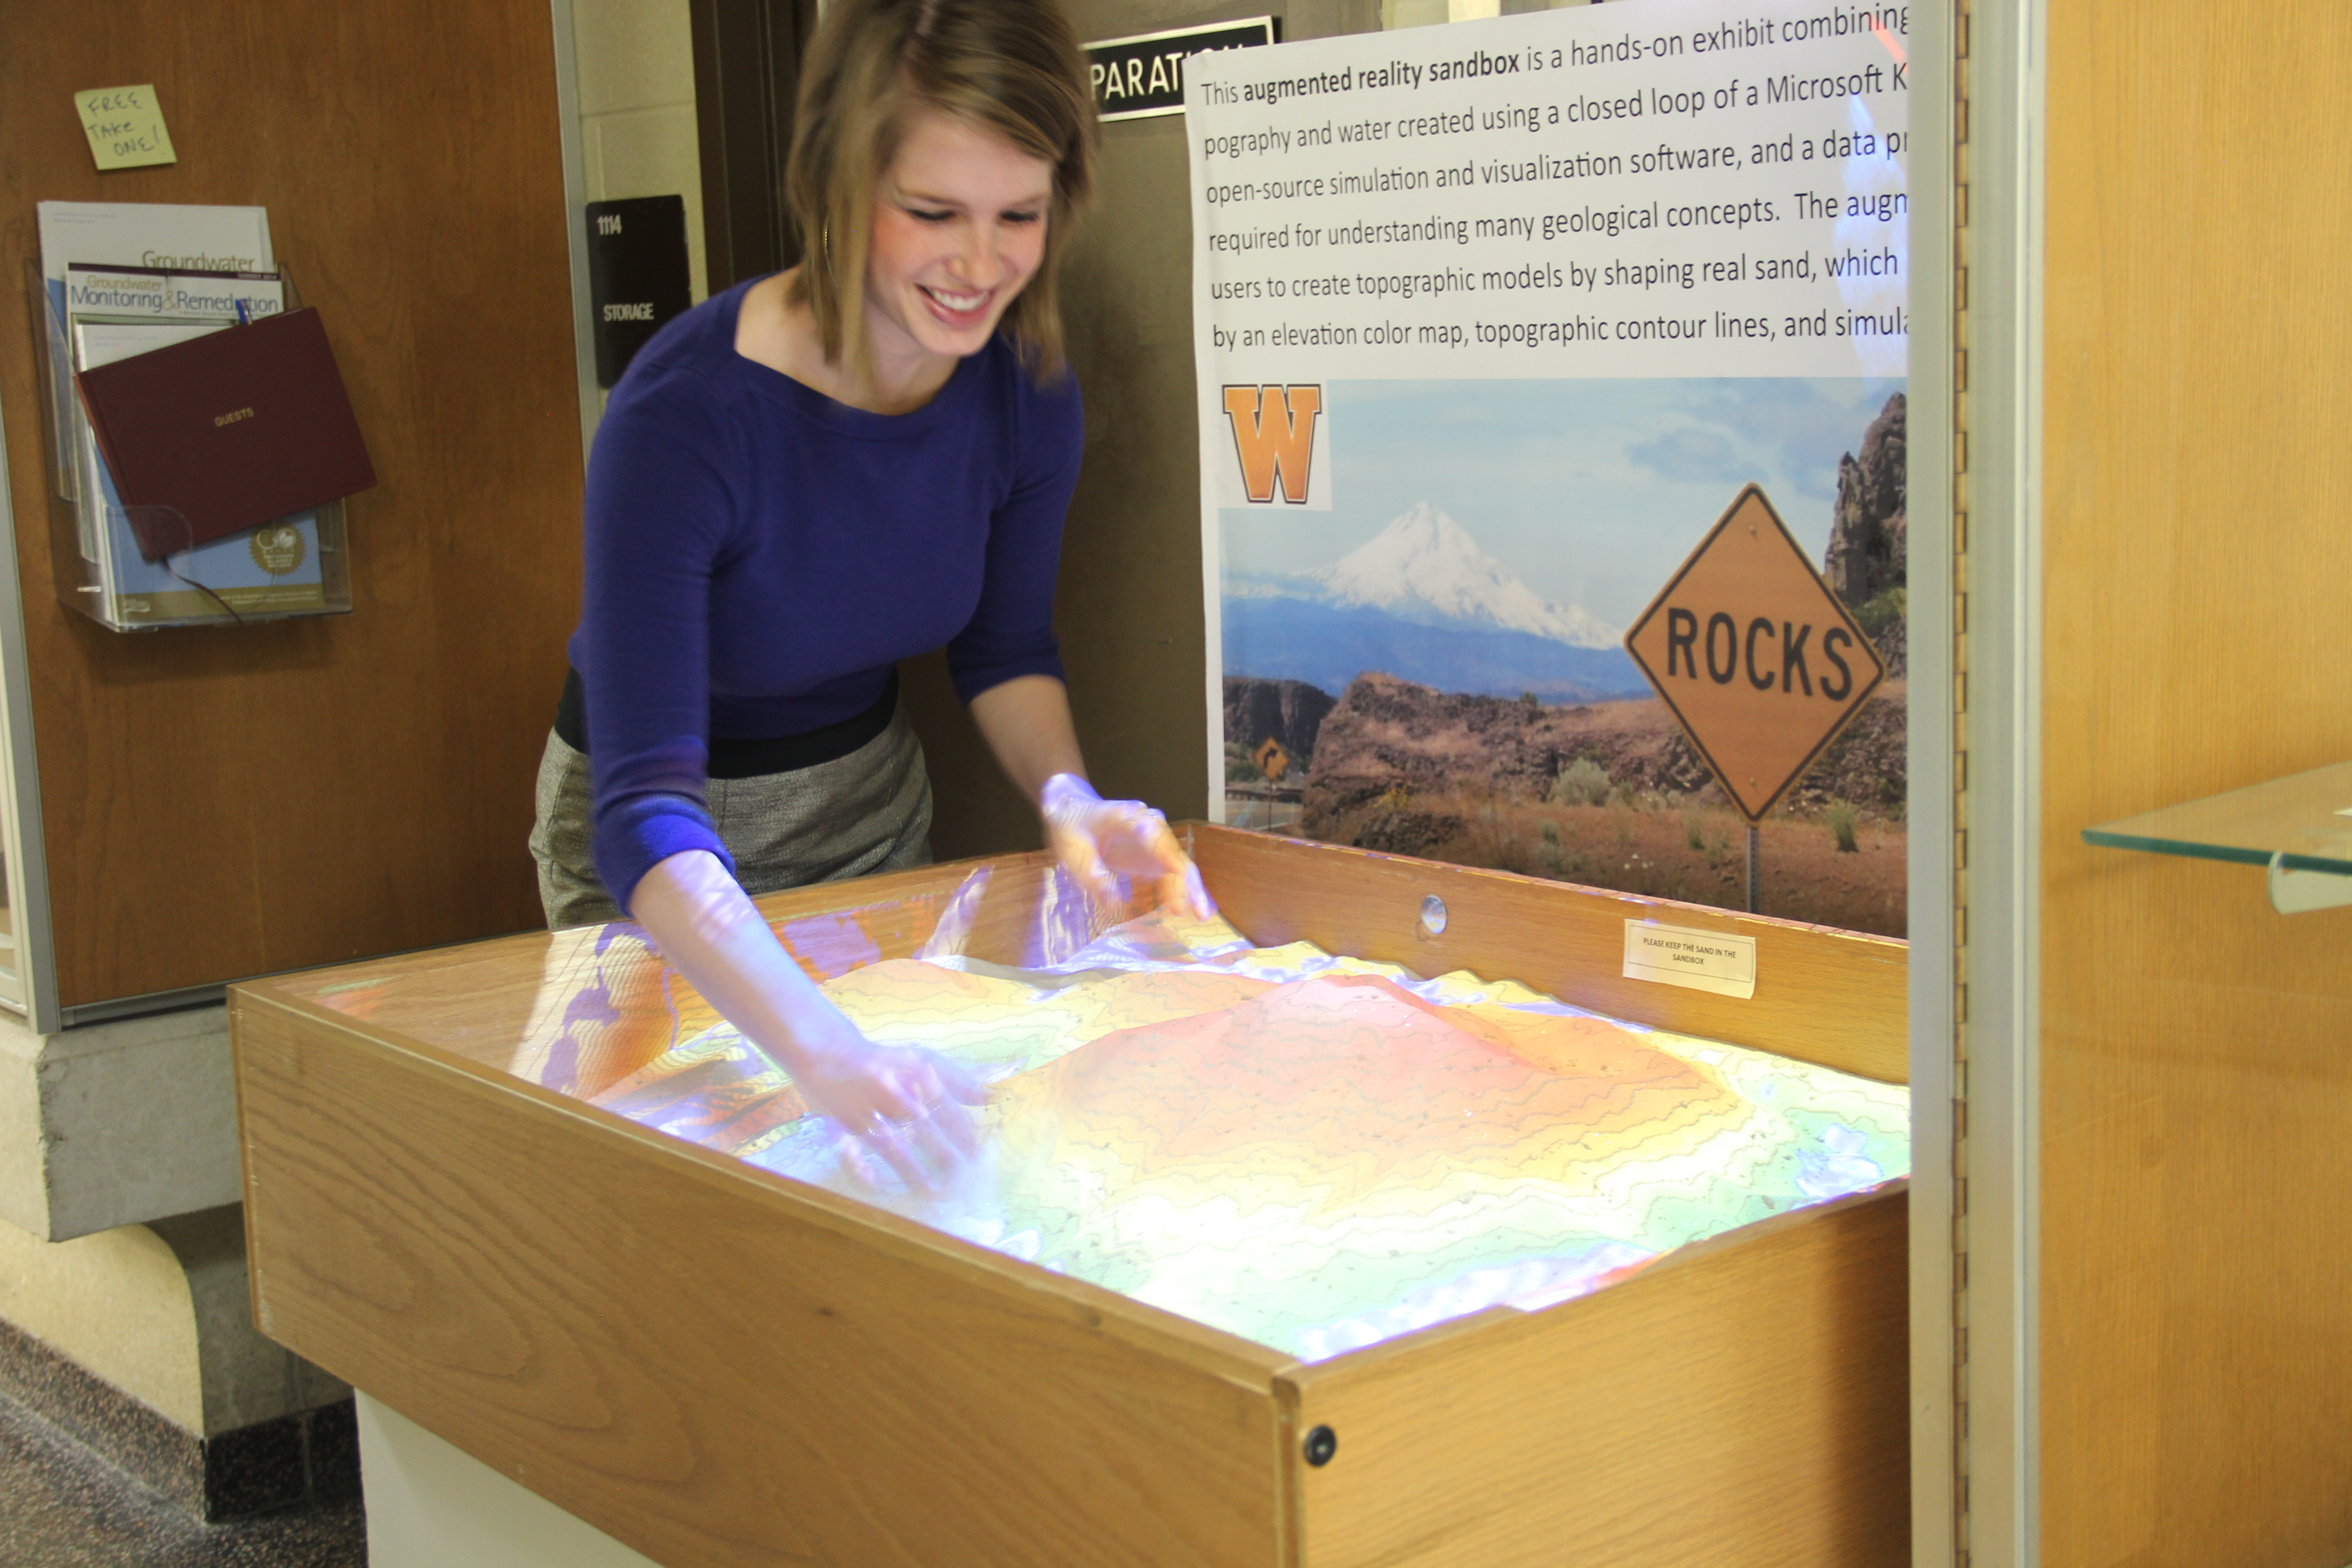 This photo shows Sara VanderMeer interacting with an exhibit in Rood Hall. The exhibit consists of a table that's roughly two feet in width by three feet in length that makes a raised sand box about a foot deep. In the box is a great deal of sand that the visitor can move around with a small scoop. The interesting thing about the exhibit is that it's lit from above with colored lights, and somehow the lights sense the height of the sand and color the sand in different colors according to how high it is piled within the box. This creates a three dimensional representation of a topographical map, and it's fun because one can change the map to one's liking.